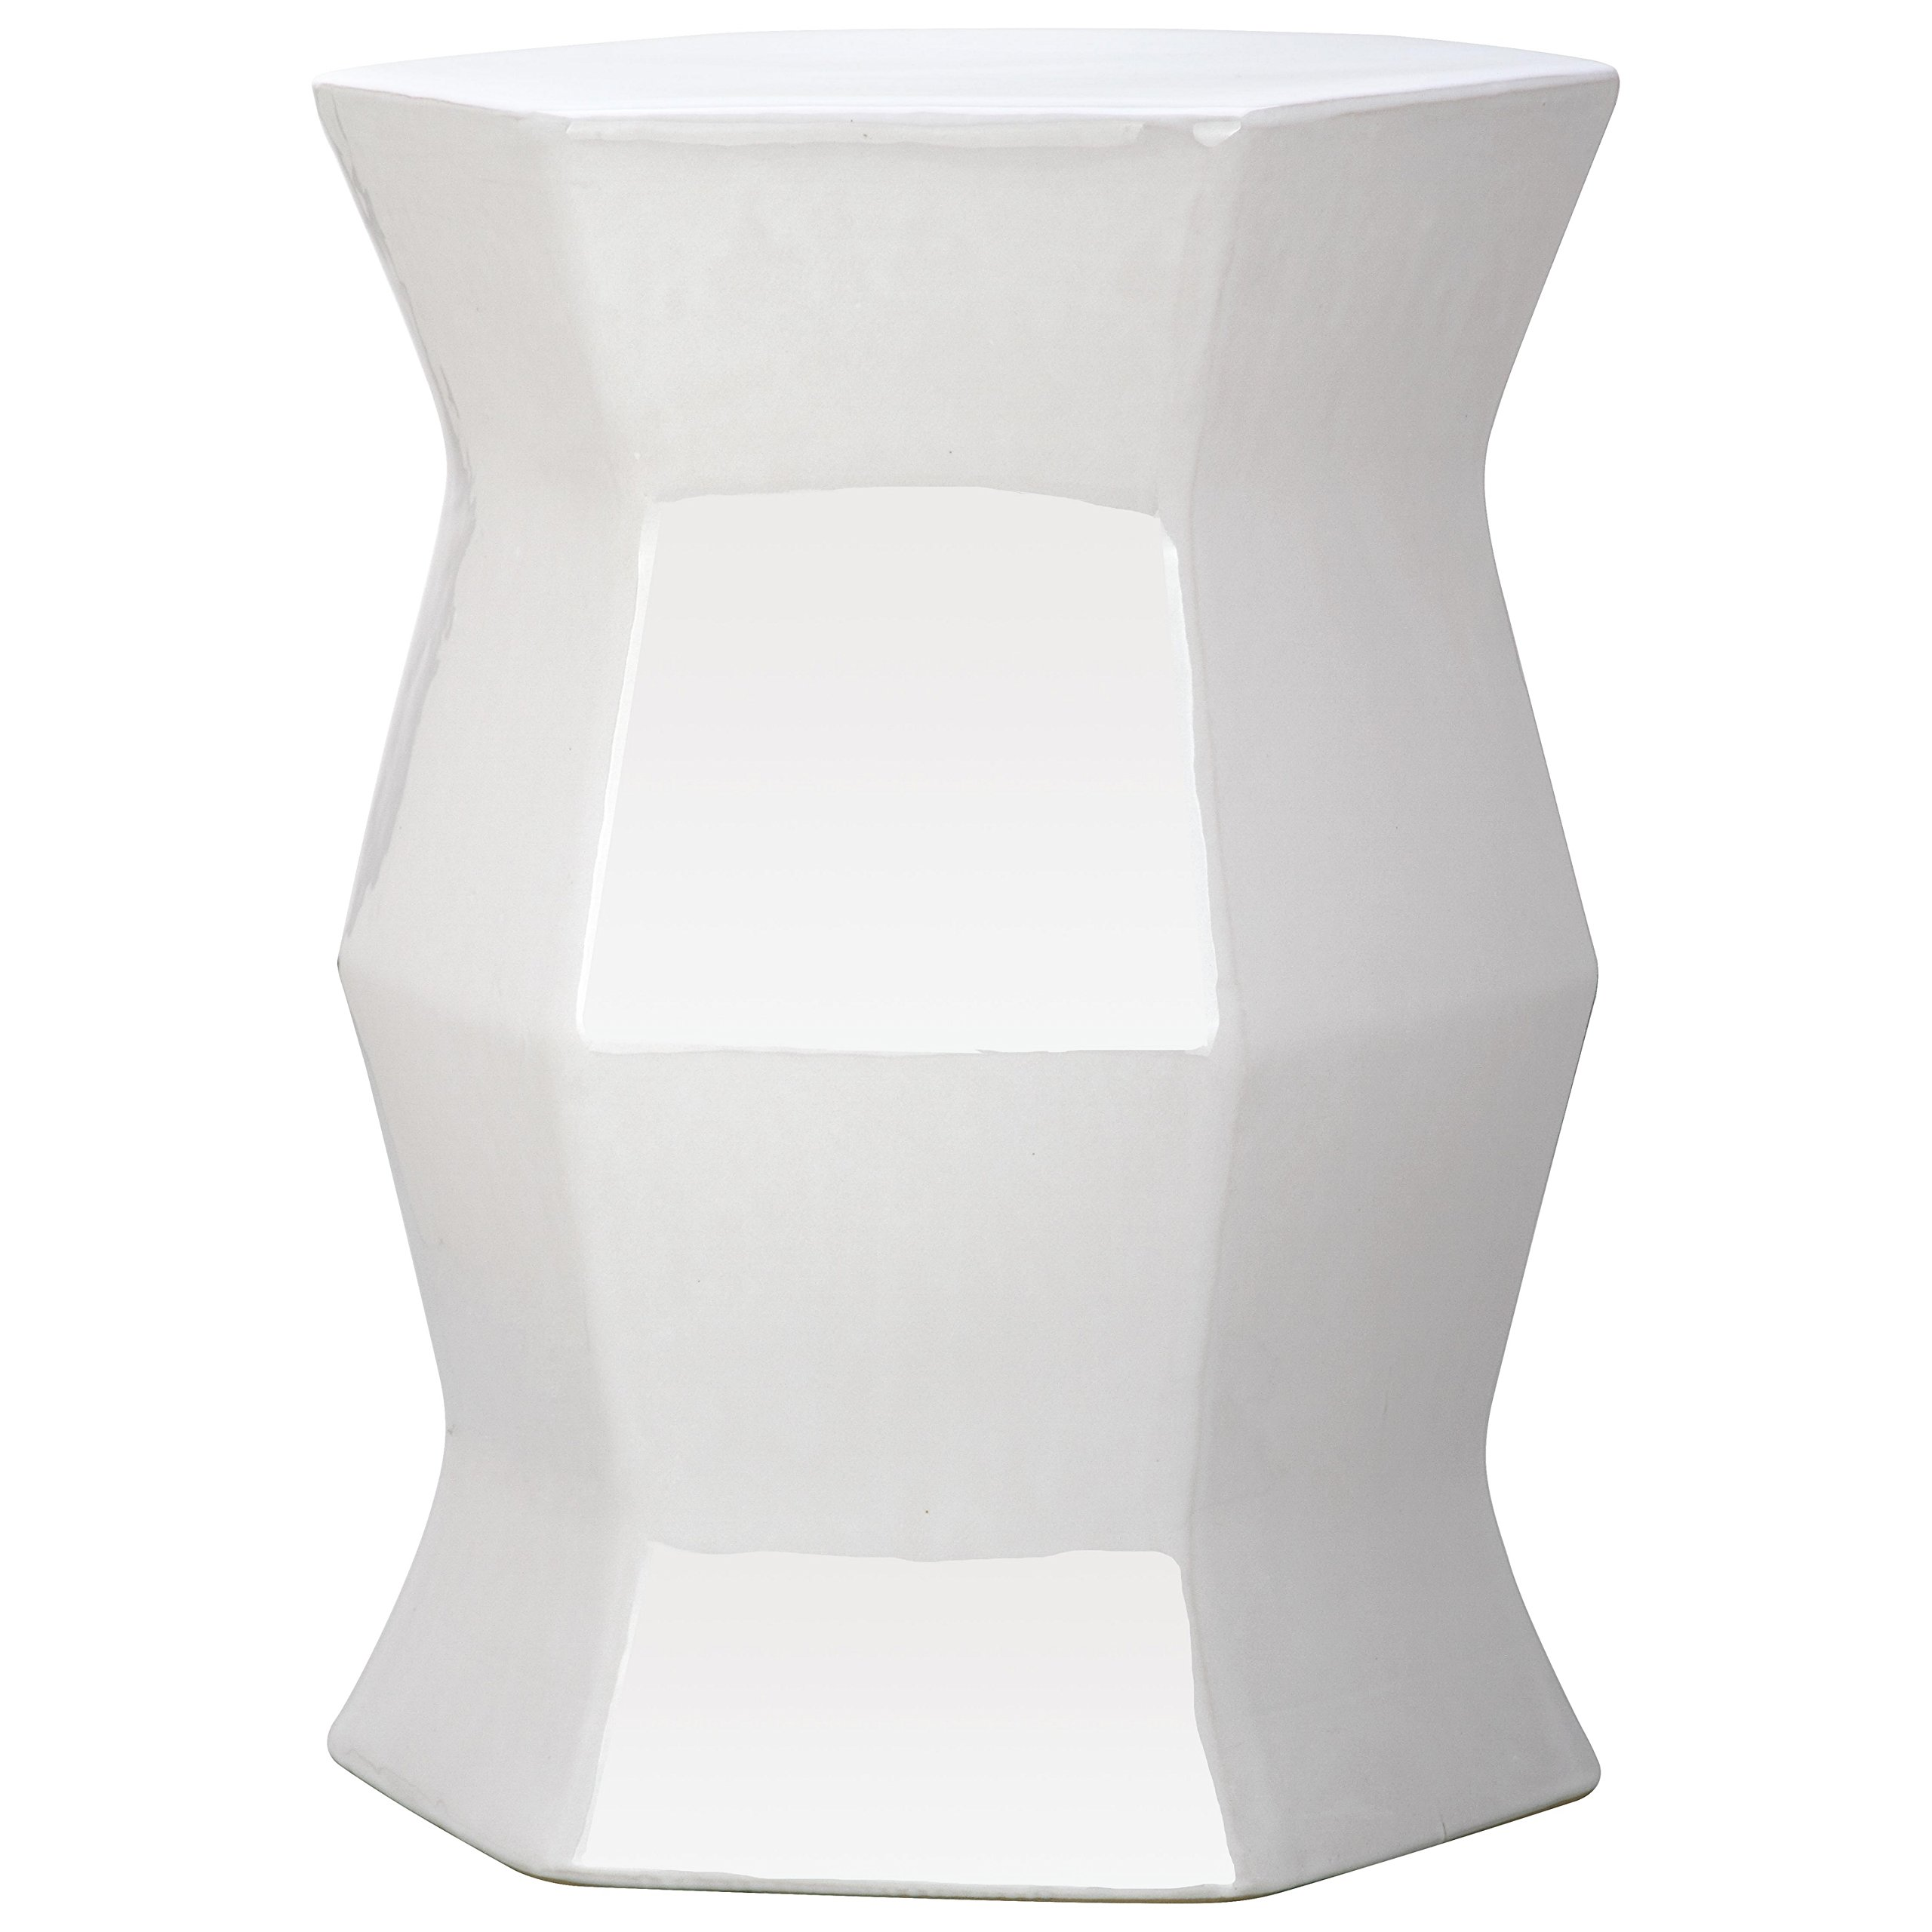 Safavieh Castle Gardens Collection Modern Hexagon White Glazed Ceramic Garden Stool by Safavieh (Image #1)